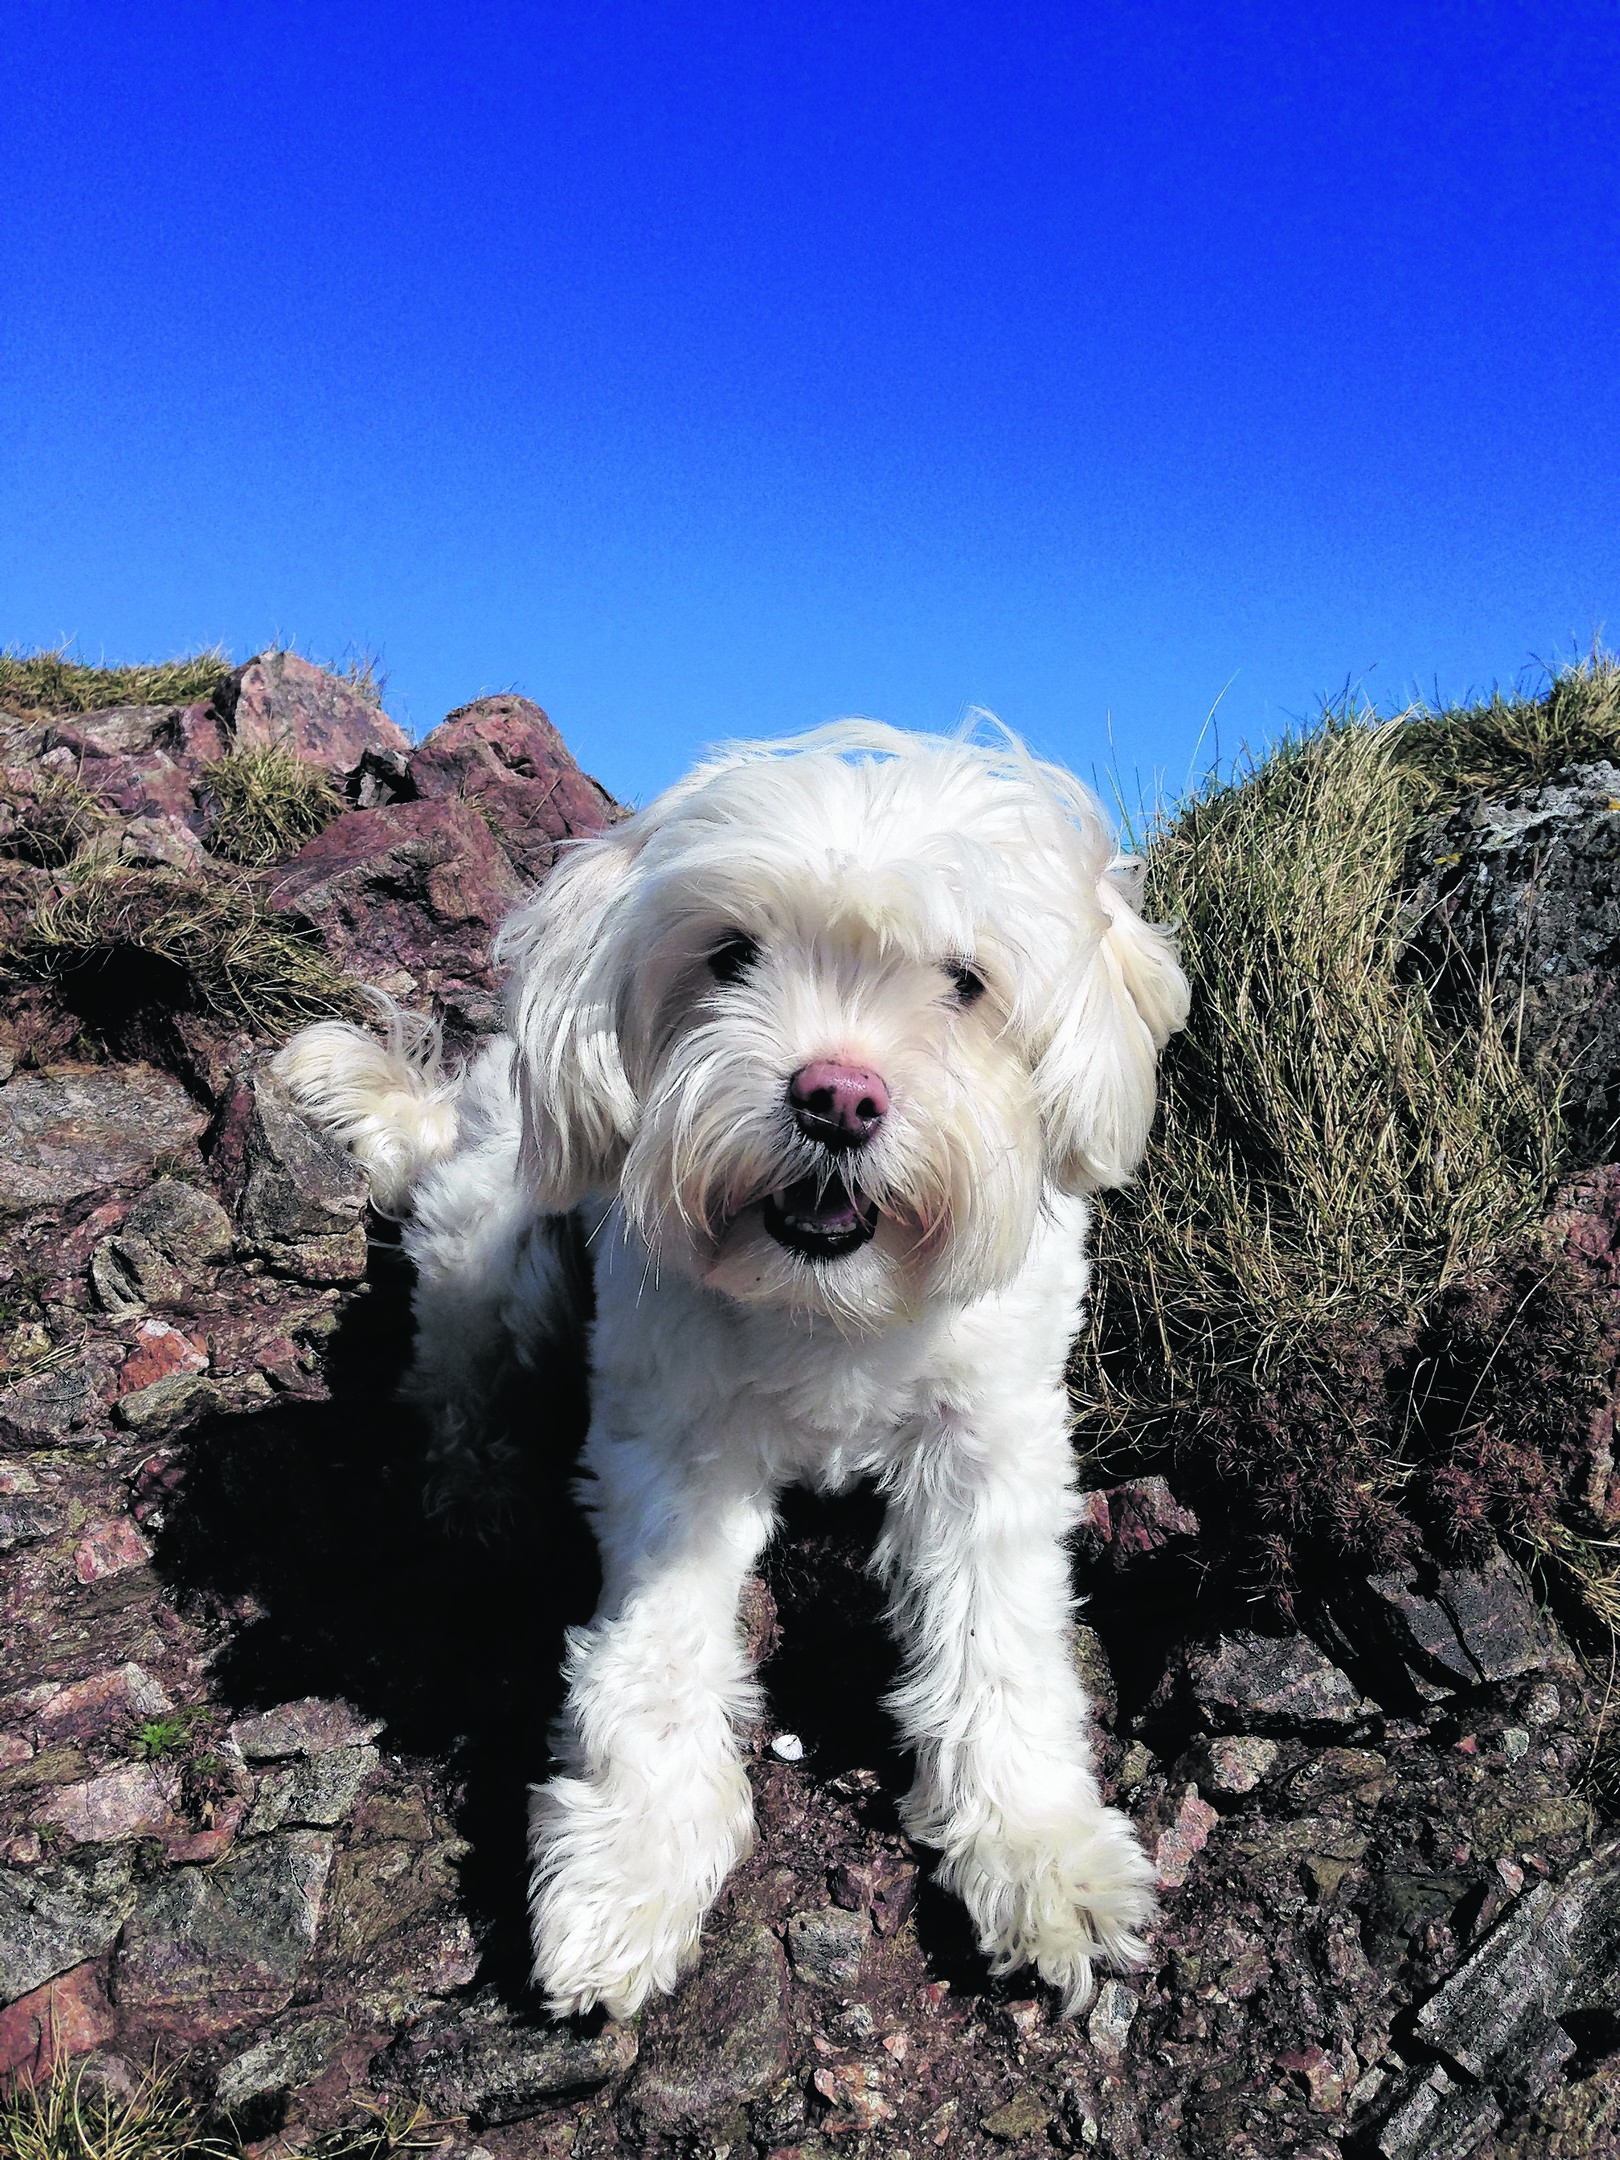 This is Creed, a Lowchen who lives with his family on Isle of Lewis. Creed is nine years old but is still just like a puppy, true to the Lowchen breed